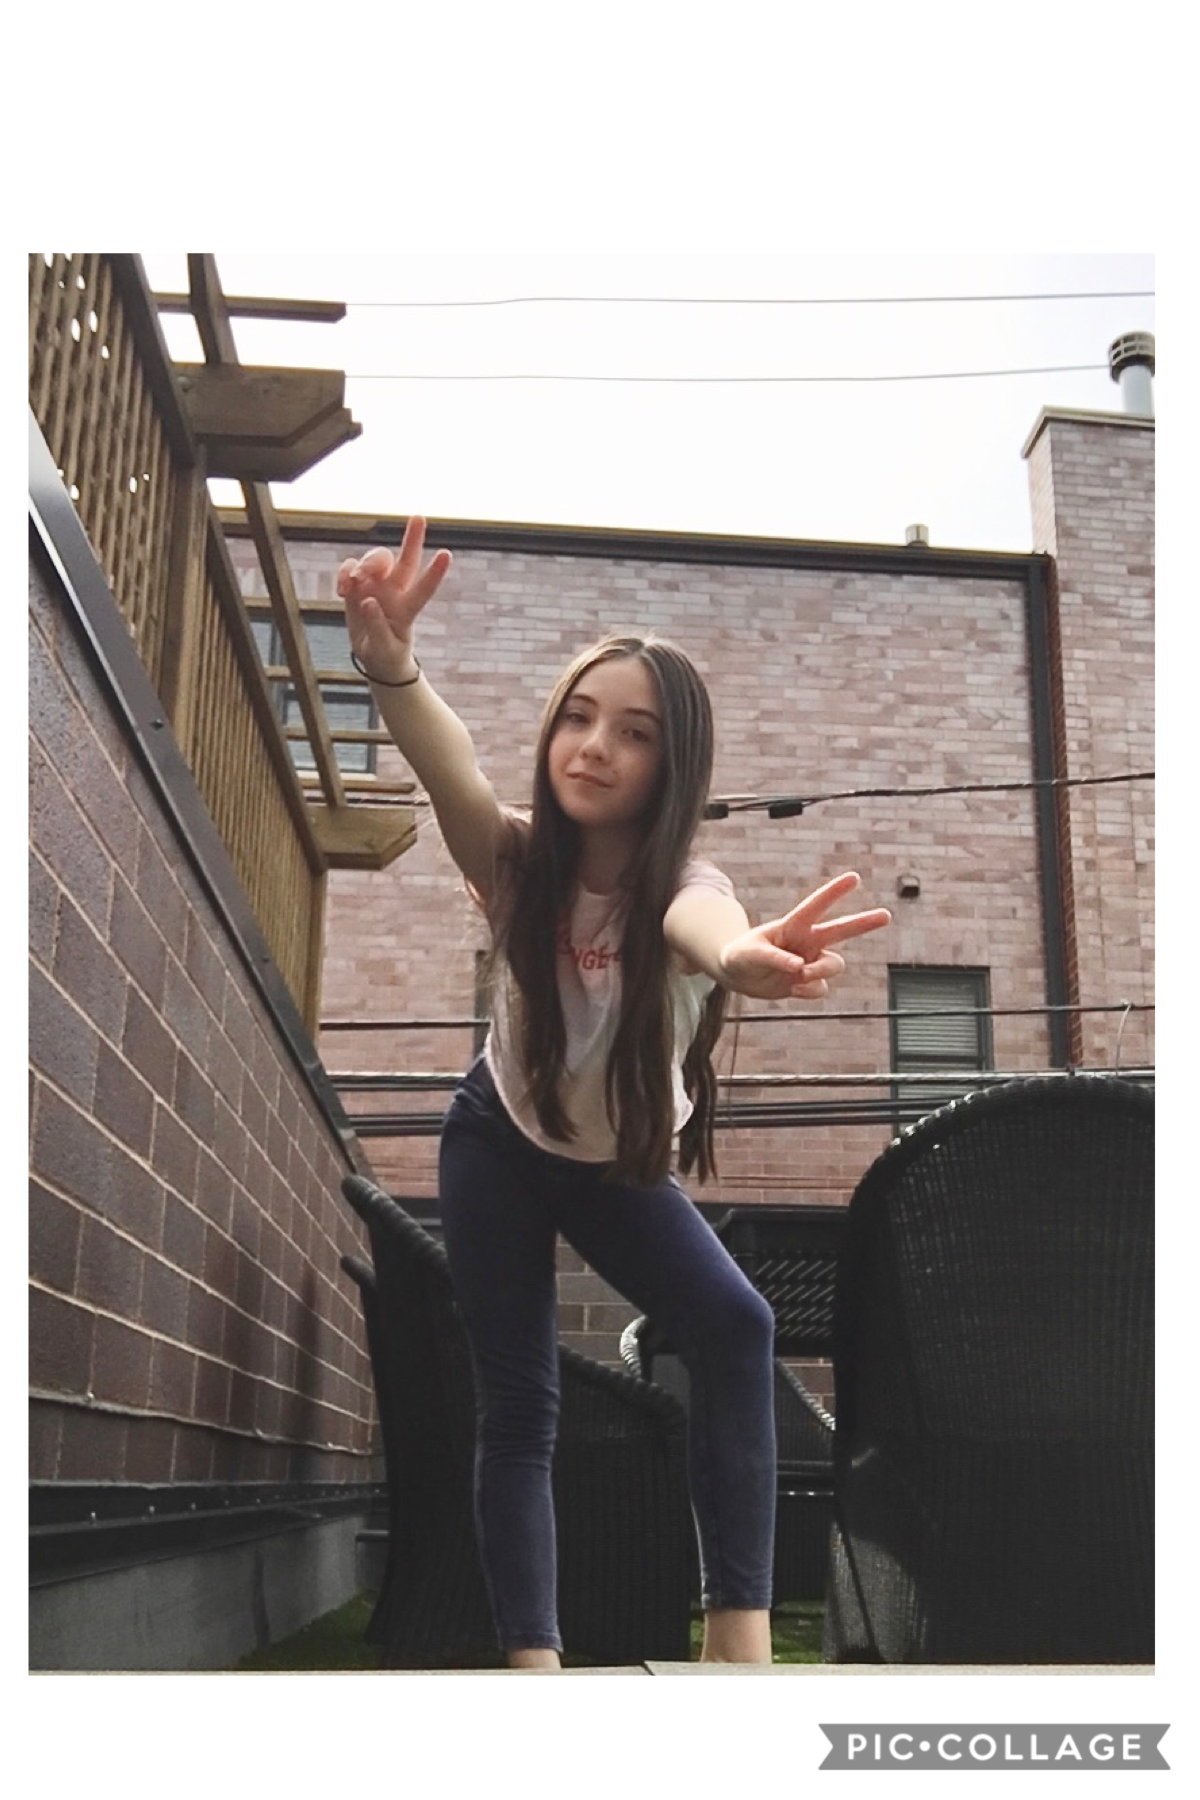 Today I was talking to some of my fans! It was great to know all of you! 🧡 please contact my team( email in bio) if you would like to have a google hangout call with me! 💜Ily all!